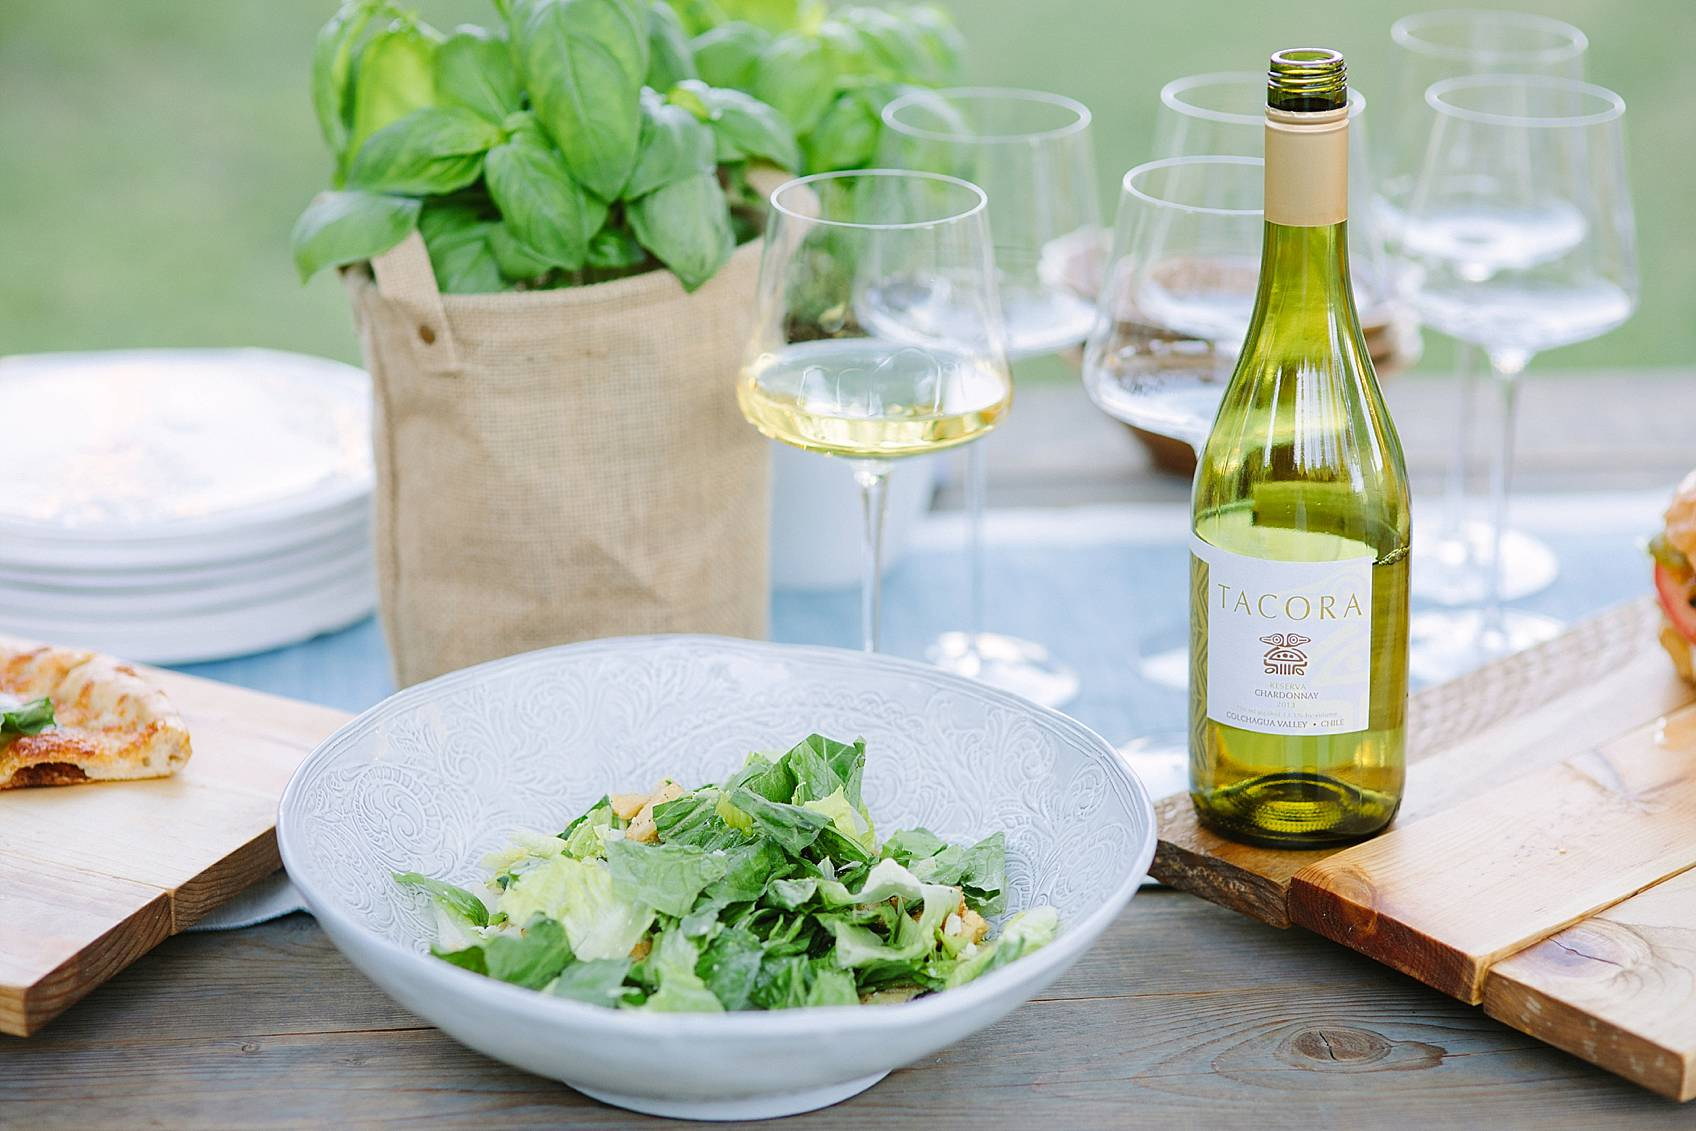 Caesar salad with Tacora Chardonnay 2013 from Colchagua; Chile